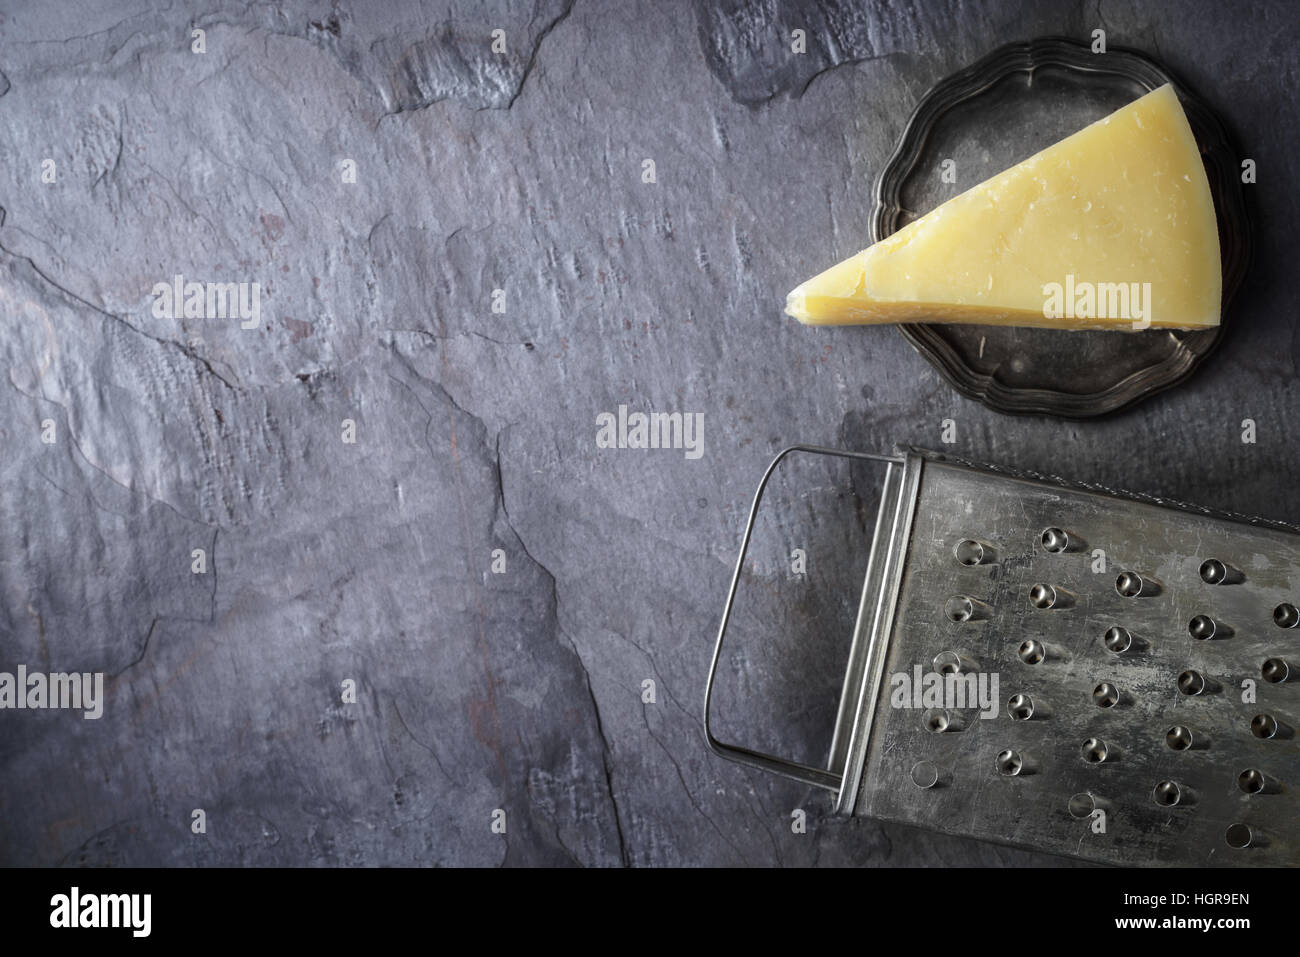 Cheese and grater on the stone background top view - Stock Image